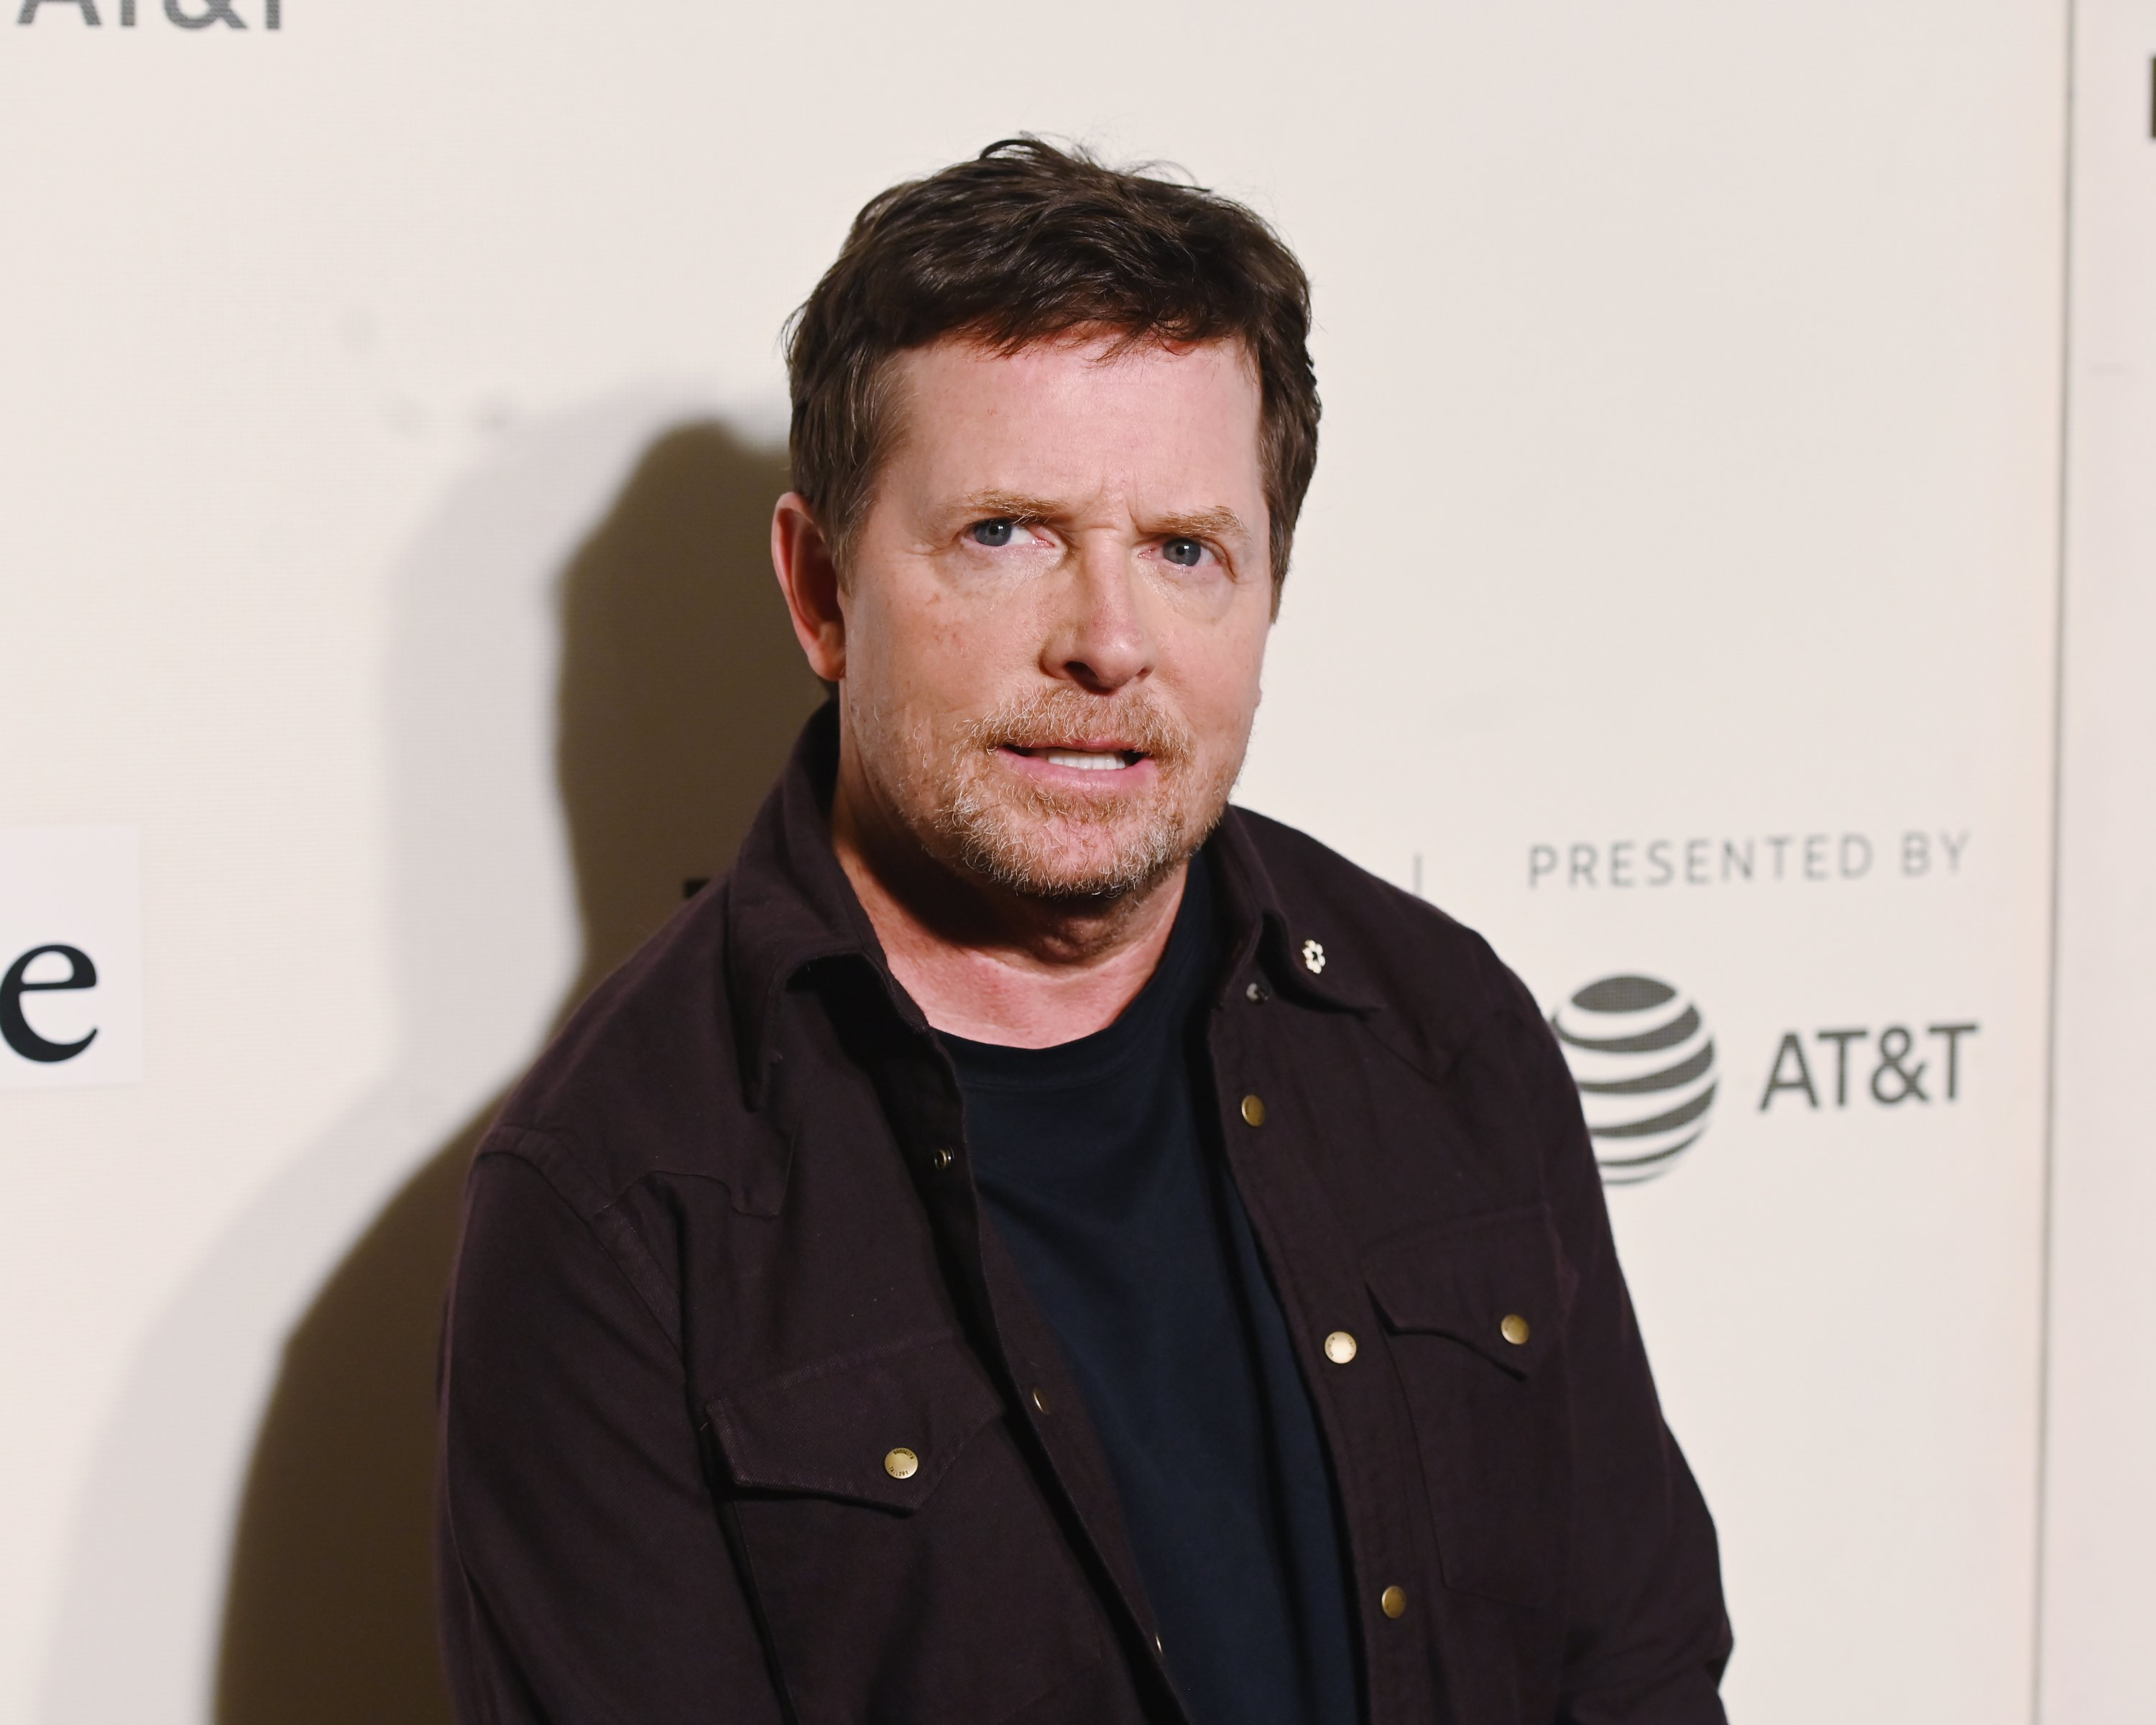 Michael J. Fox attends red carpet for the Tribeca Talks - Storytellers - 2019 Tribeca Film Festival at BMCC Tribeca PAC on April 30, 2019.   Source: Getty Images